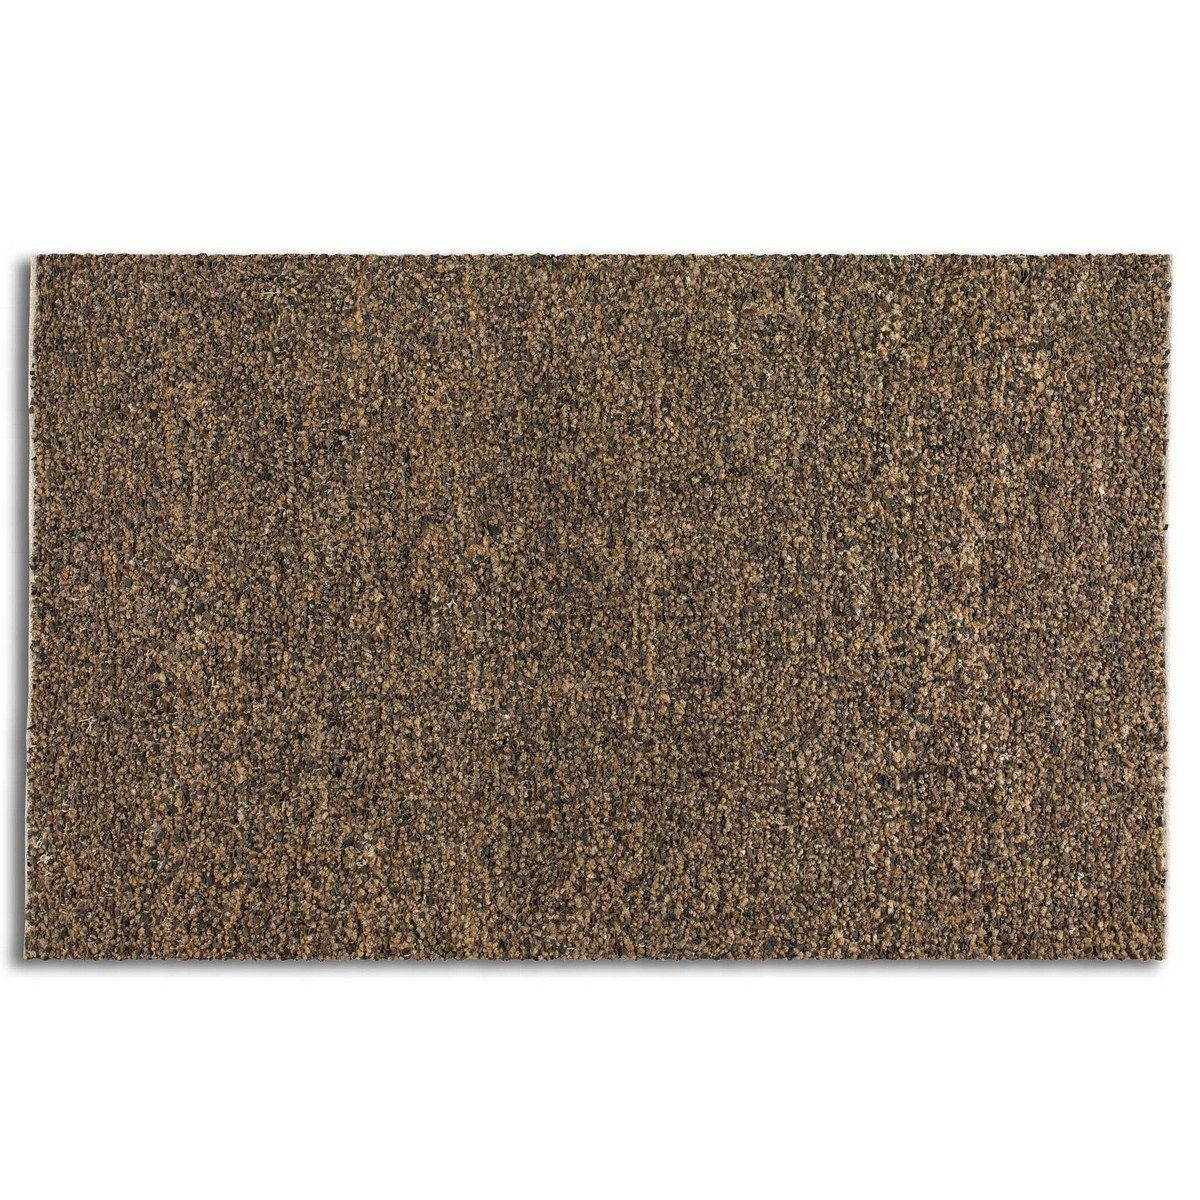 Uttermost Tufara 8 X 10 Rug - Brown